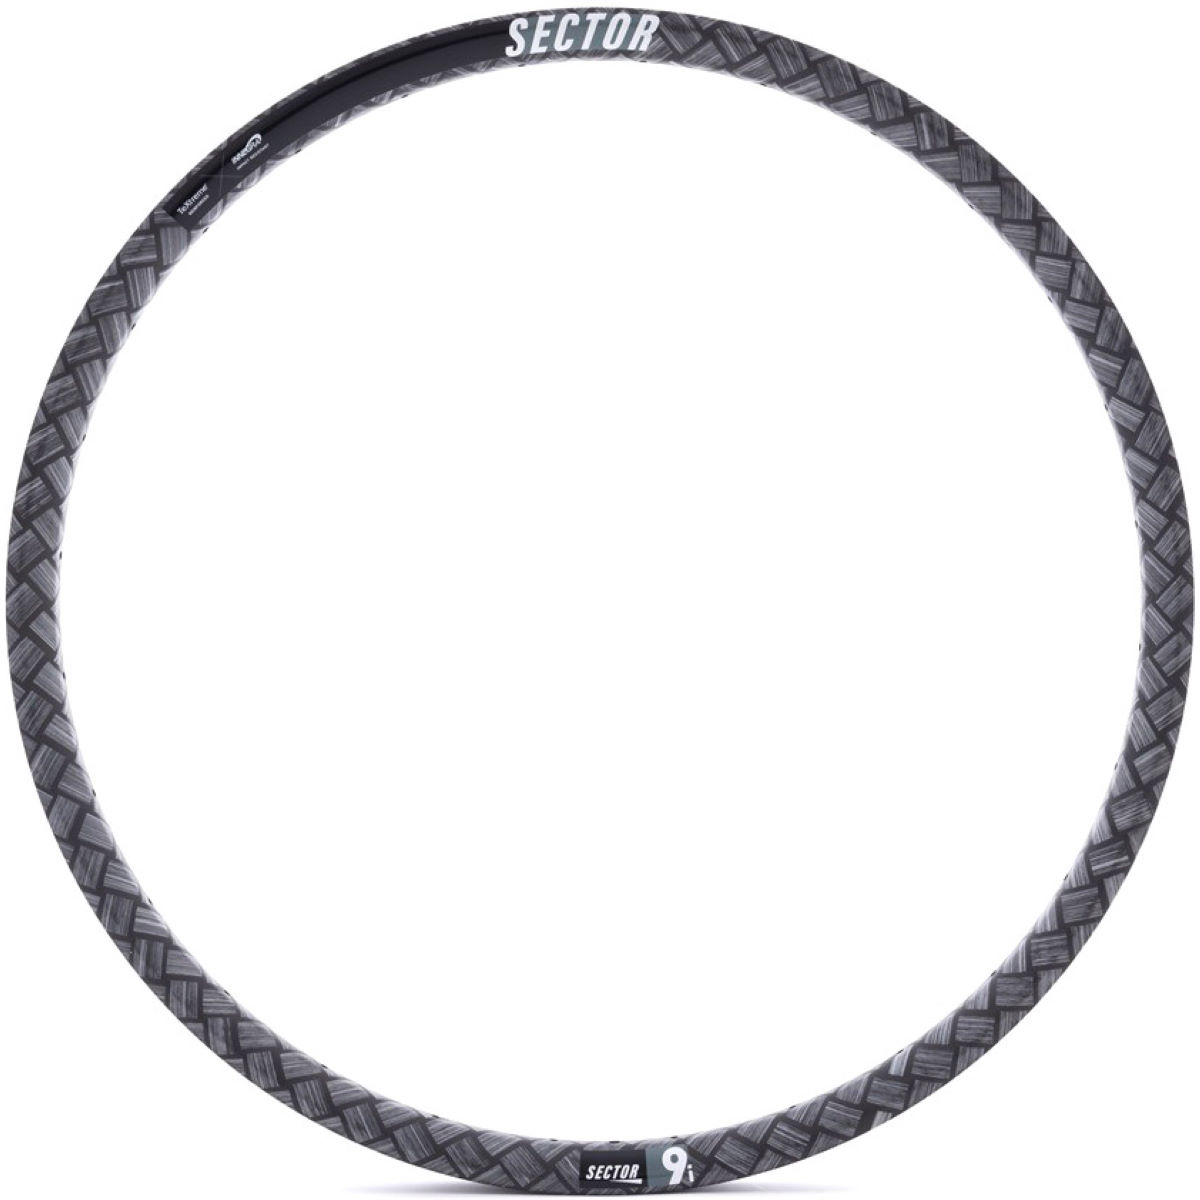 Sector 9i Carbon Rear MTB Rim - Llantas